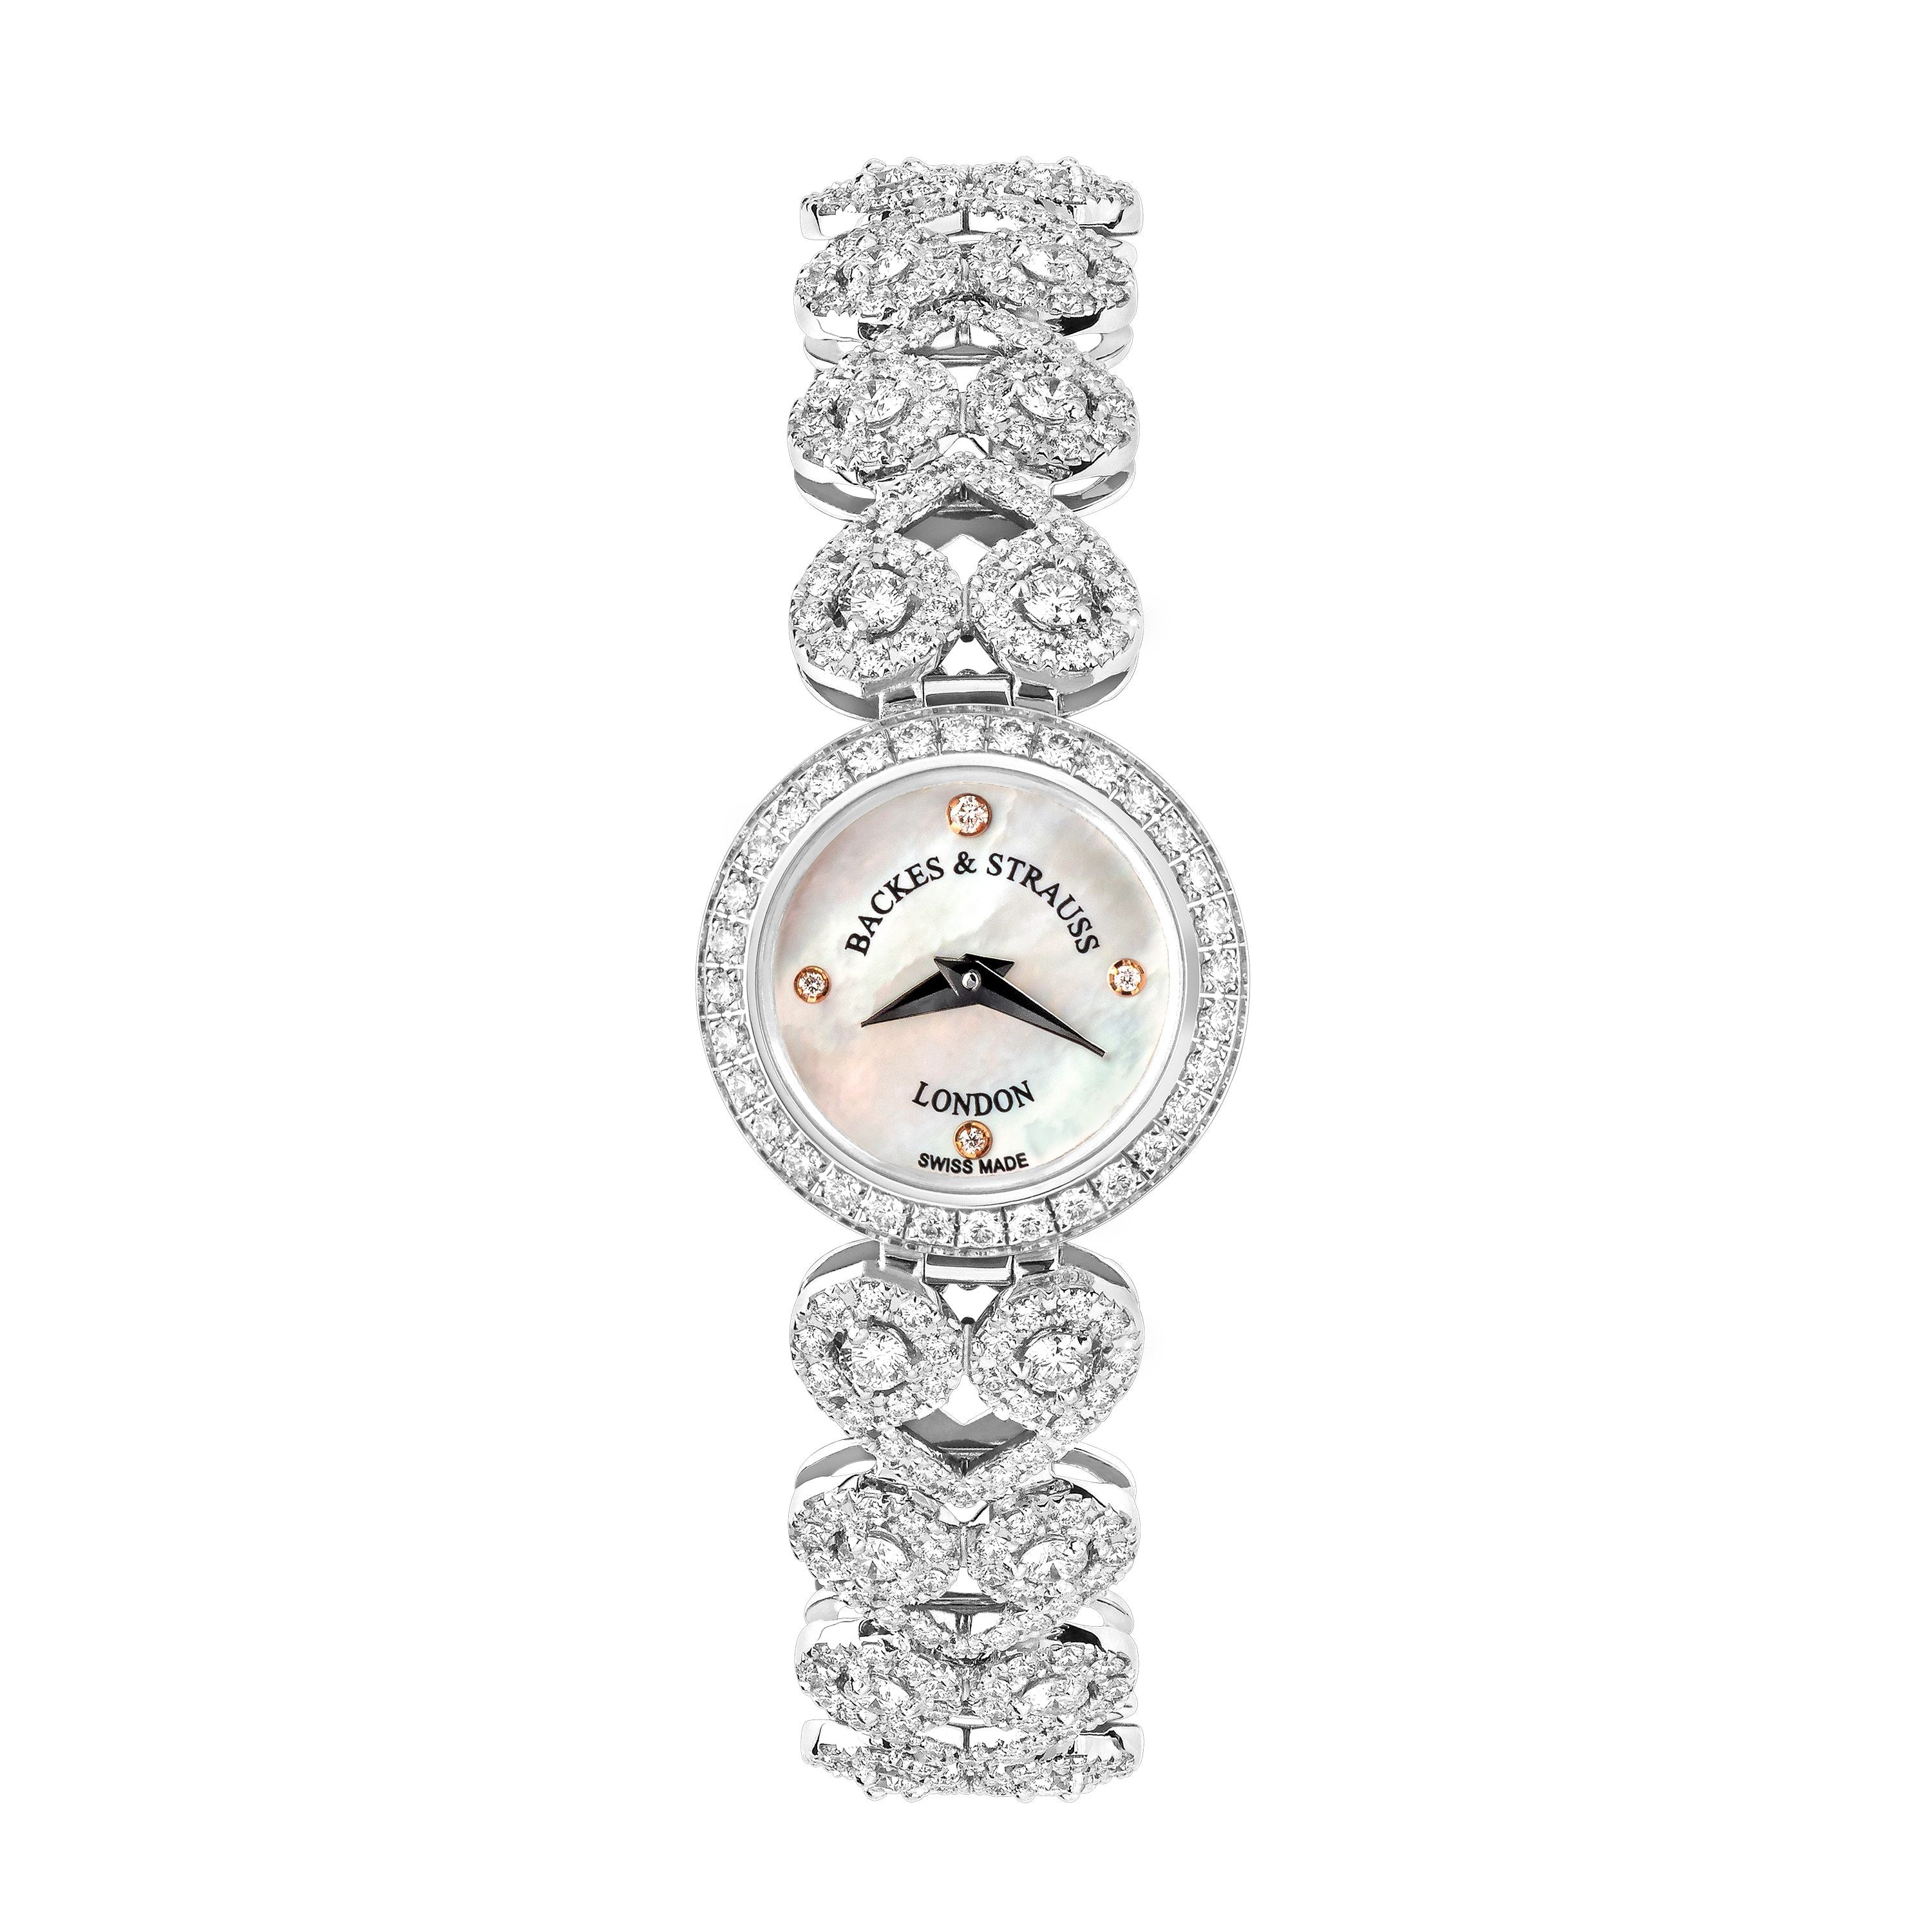 Lady Victoria Luxury Diamond Watch for Women - 18 mm White Gold - Backes & Strauss